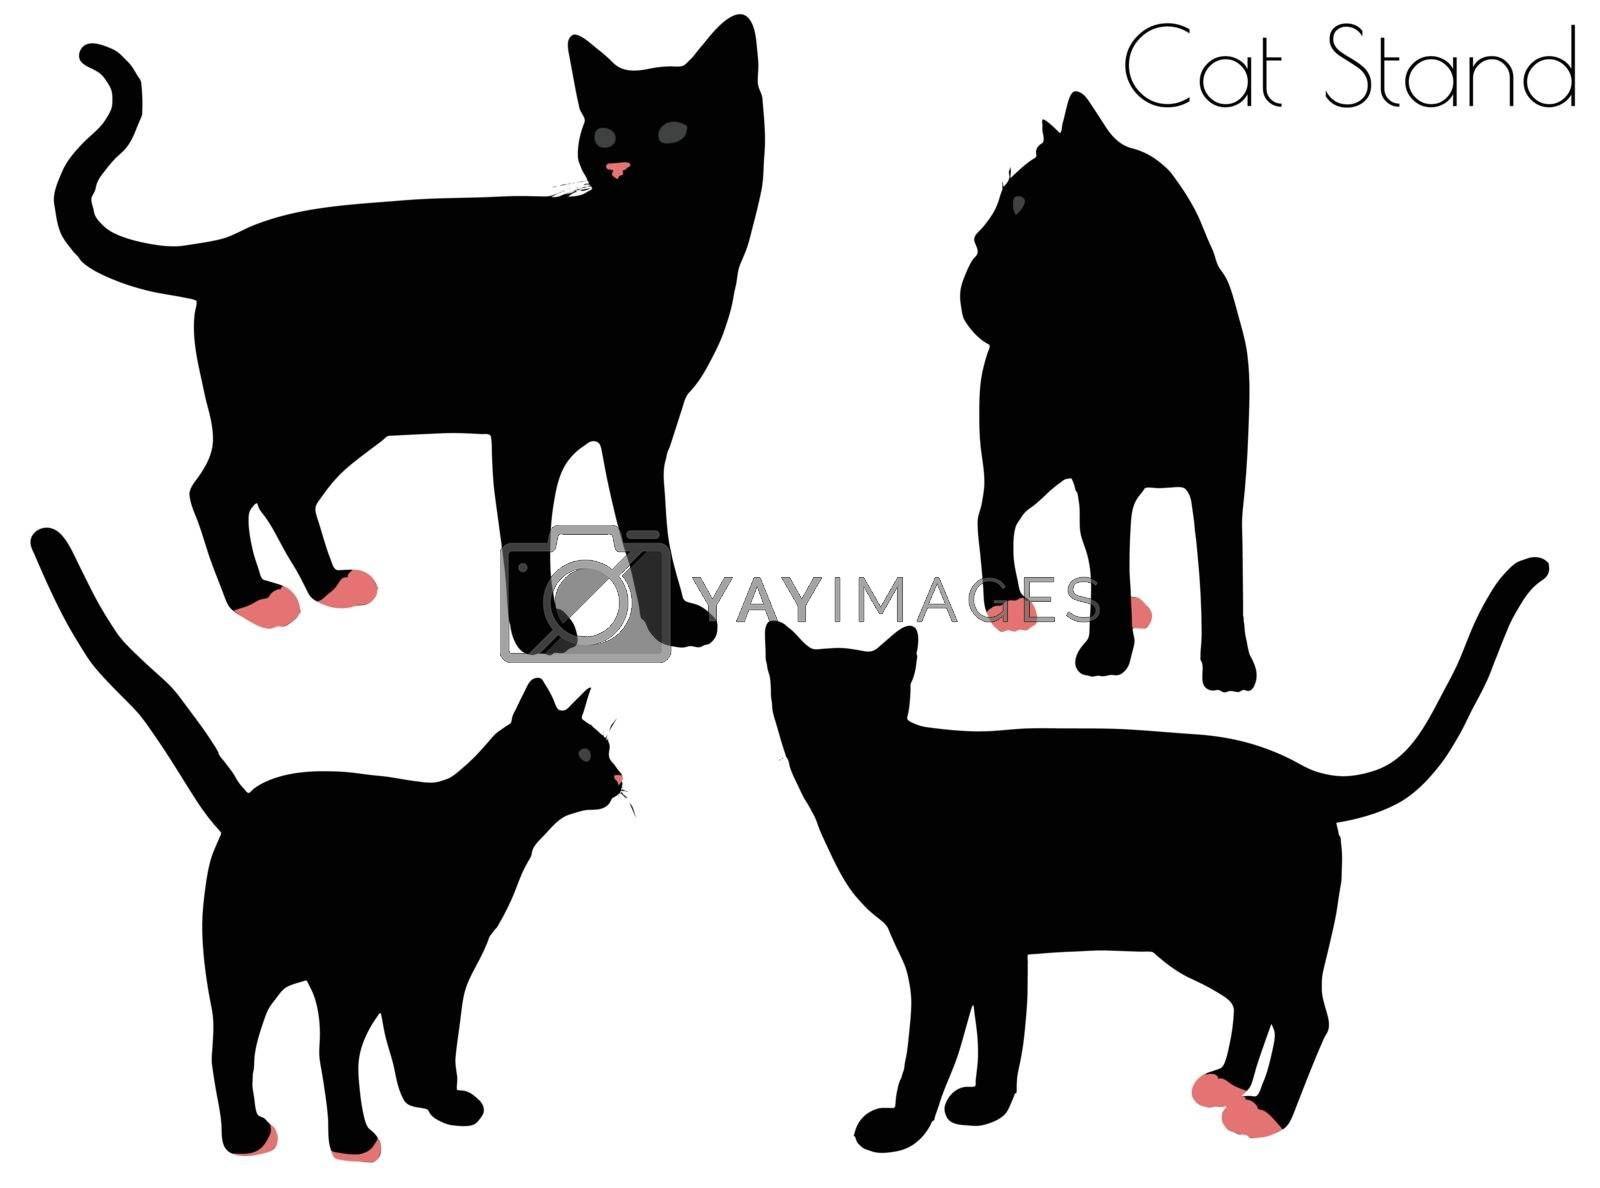 EPS 10 vector illustration of cat silhouette in Stand Pose